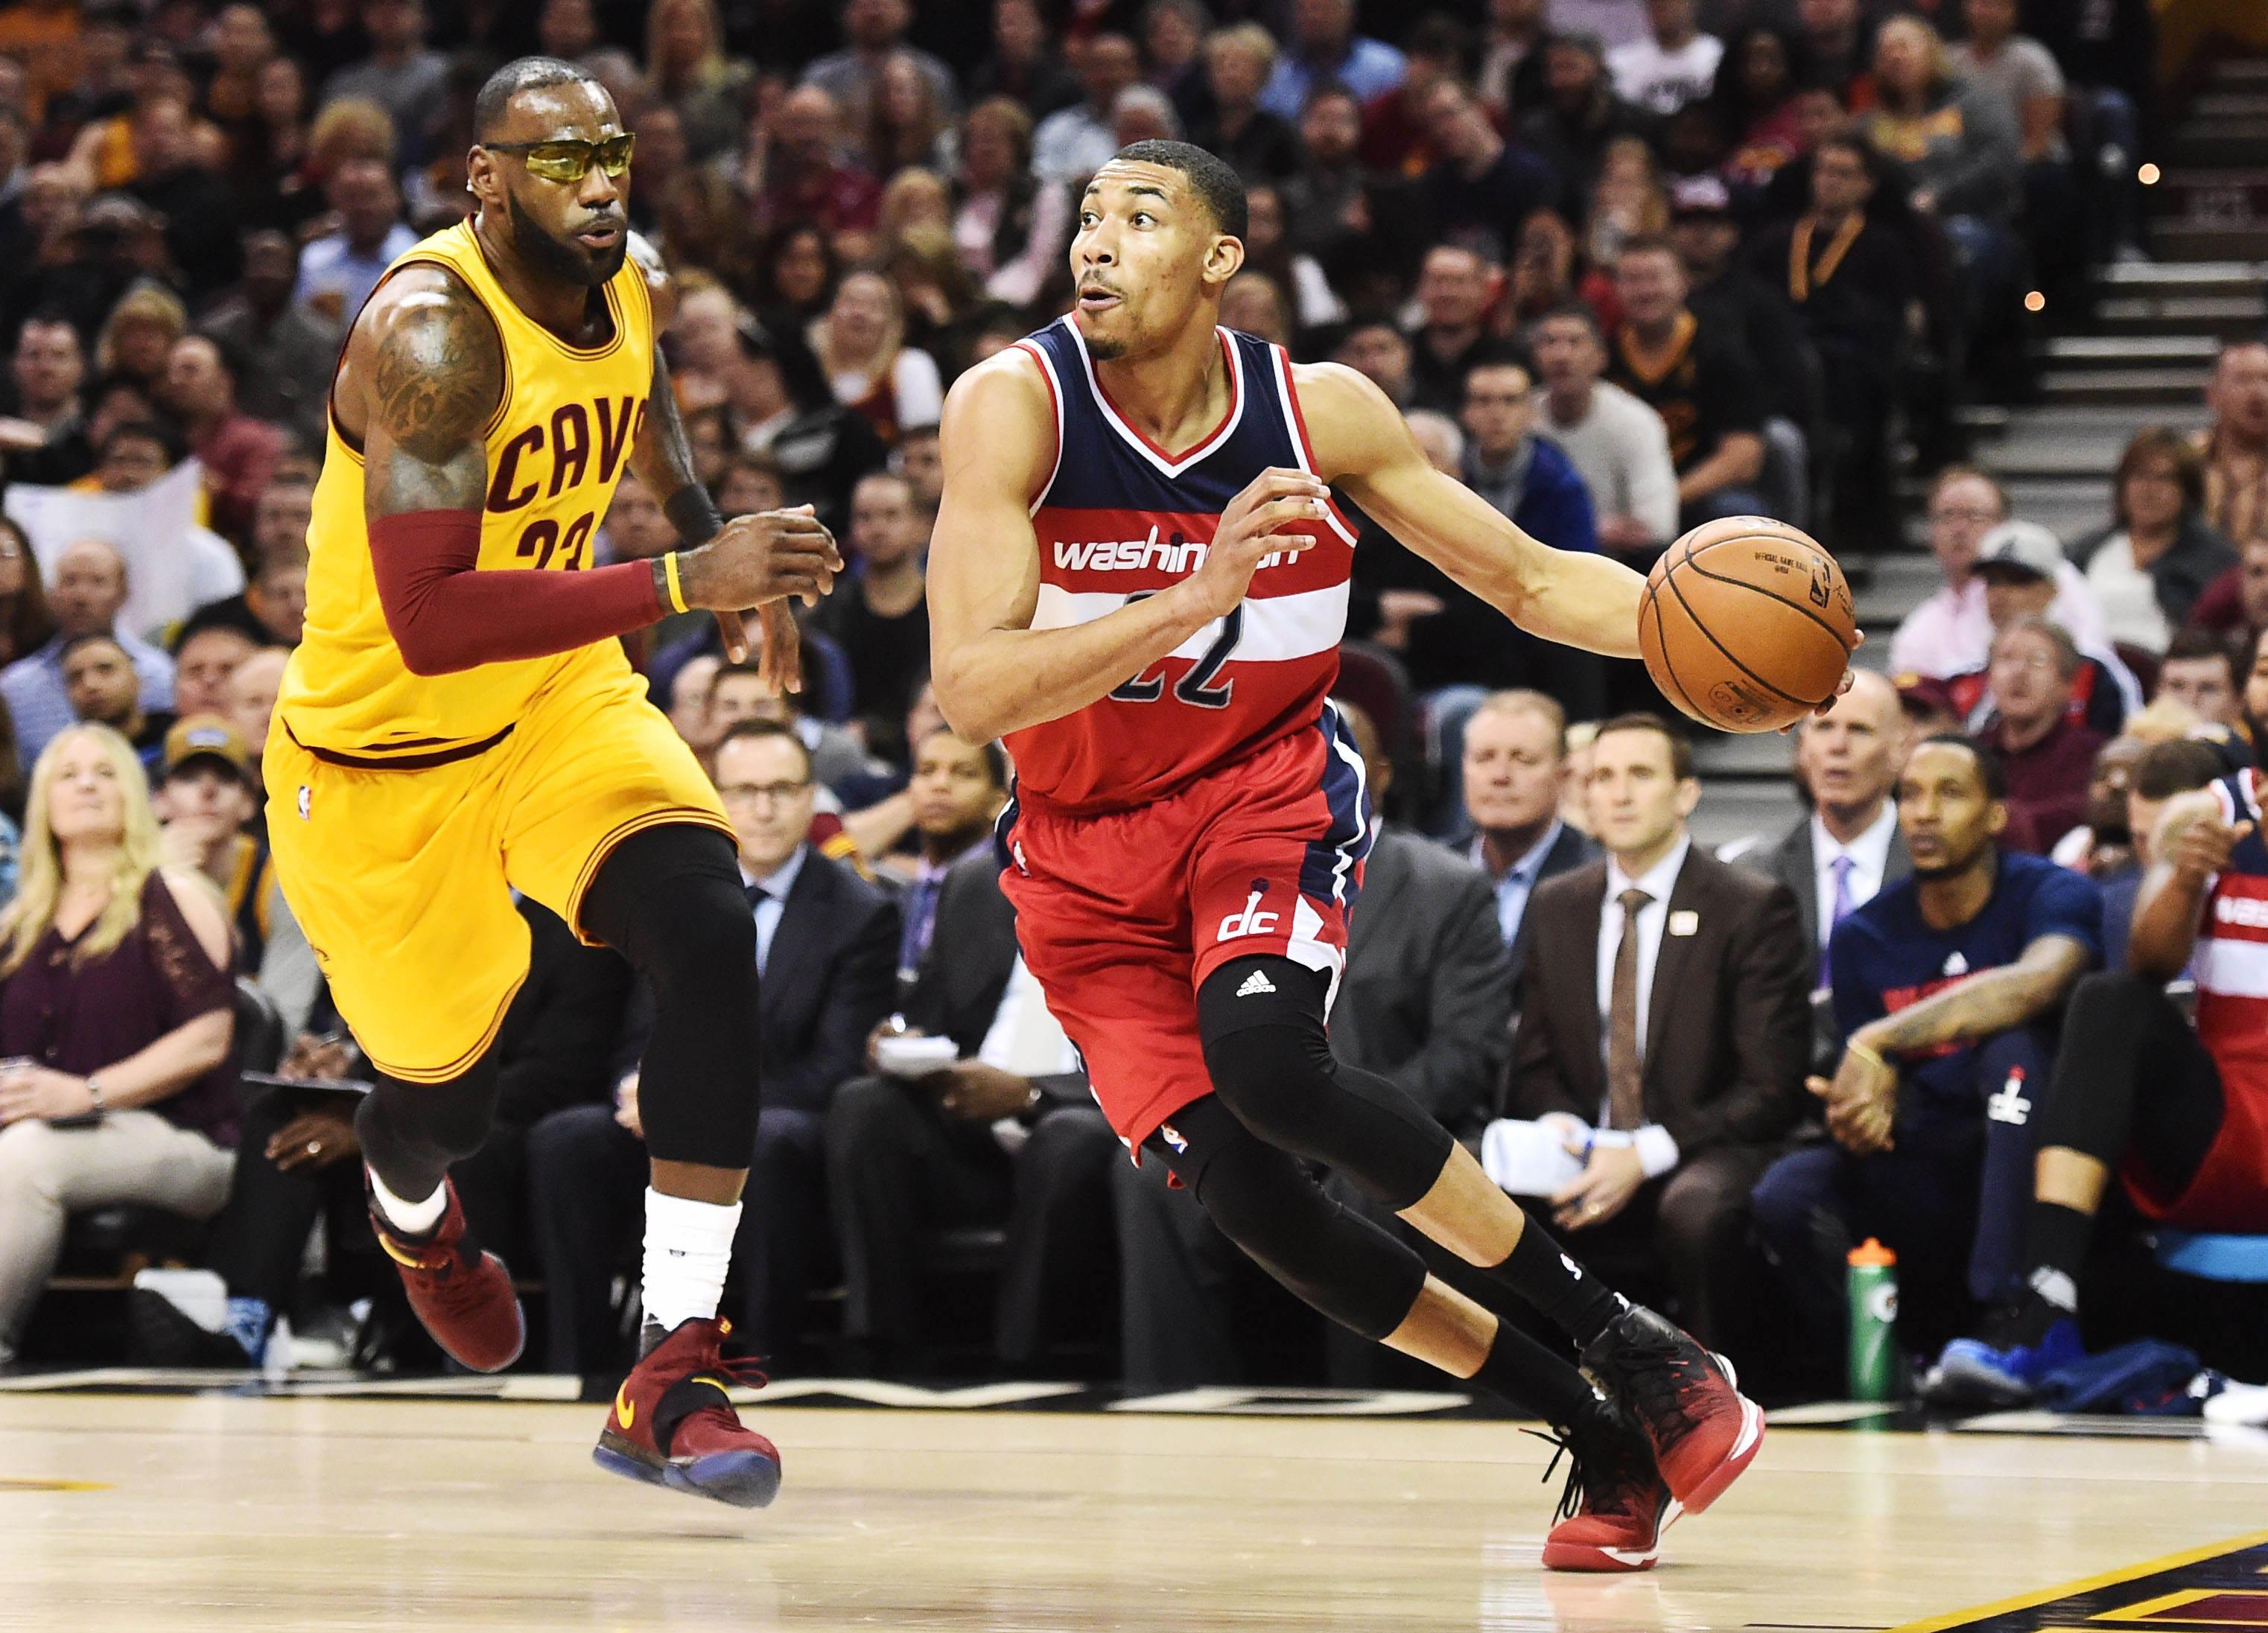 Should I Stay Or Should I Go? Otto Porter And The Wizards' Cap Dilemma